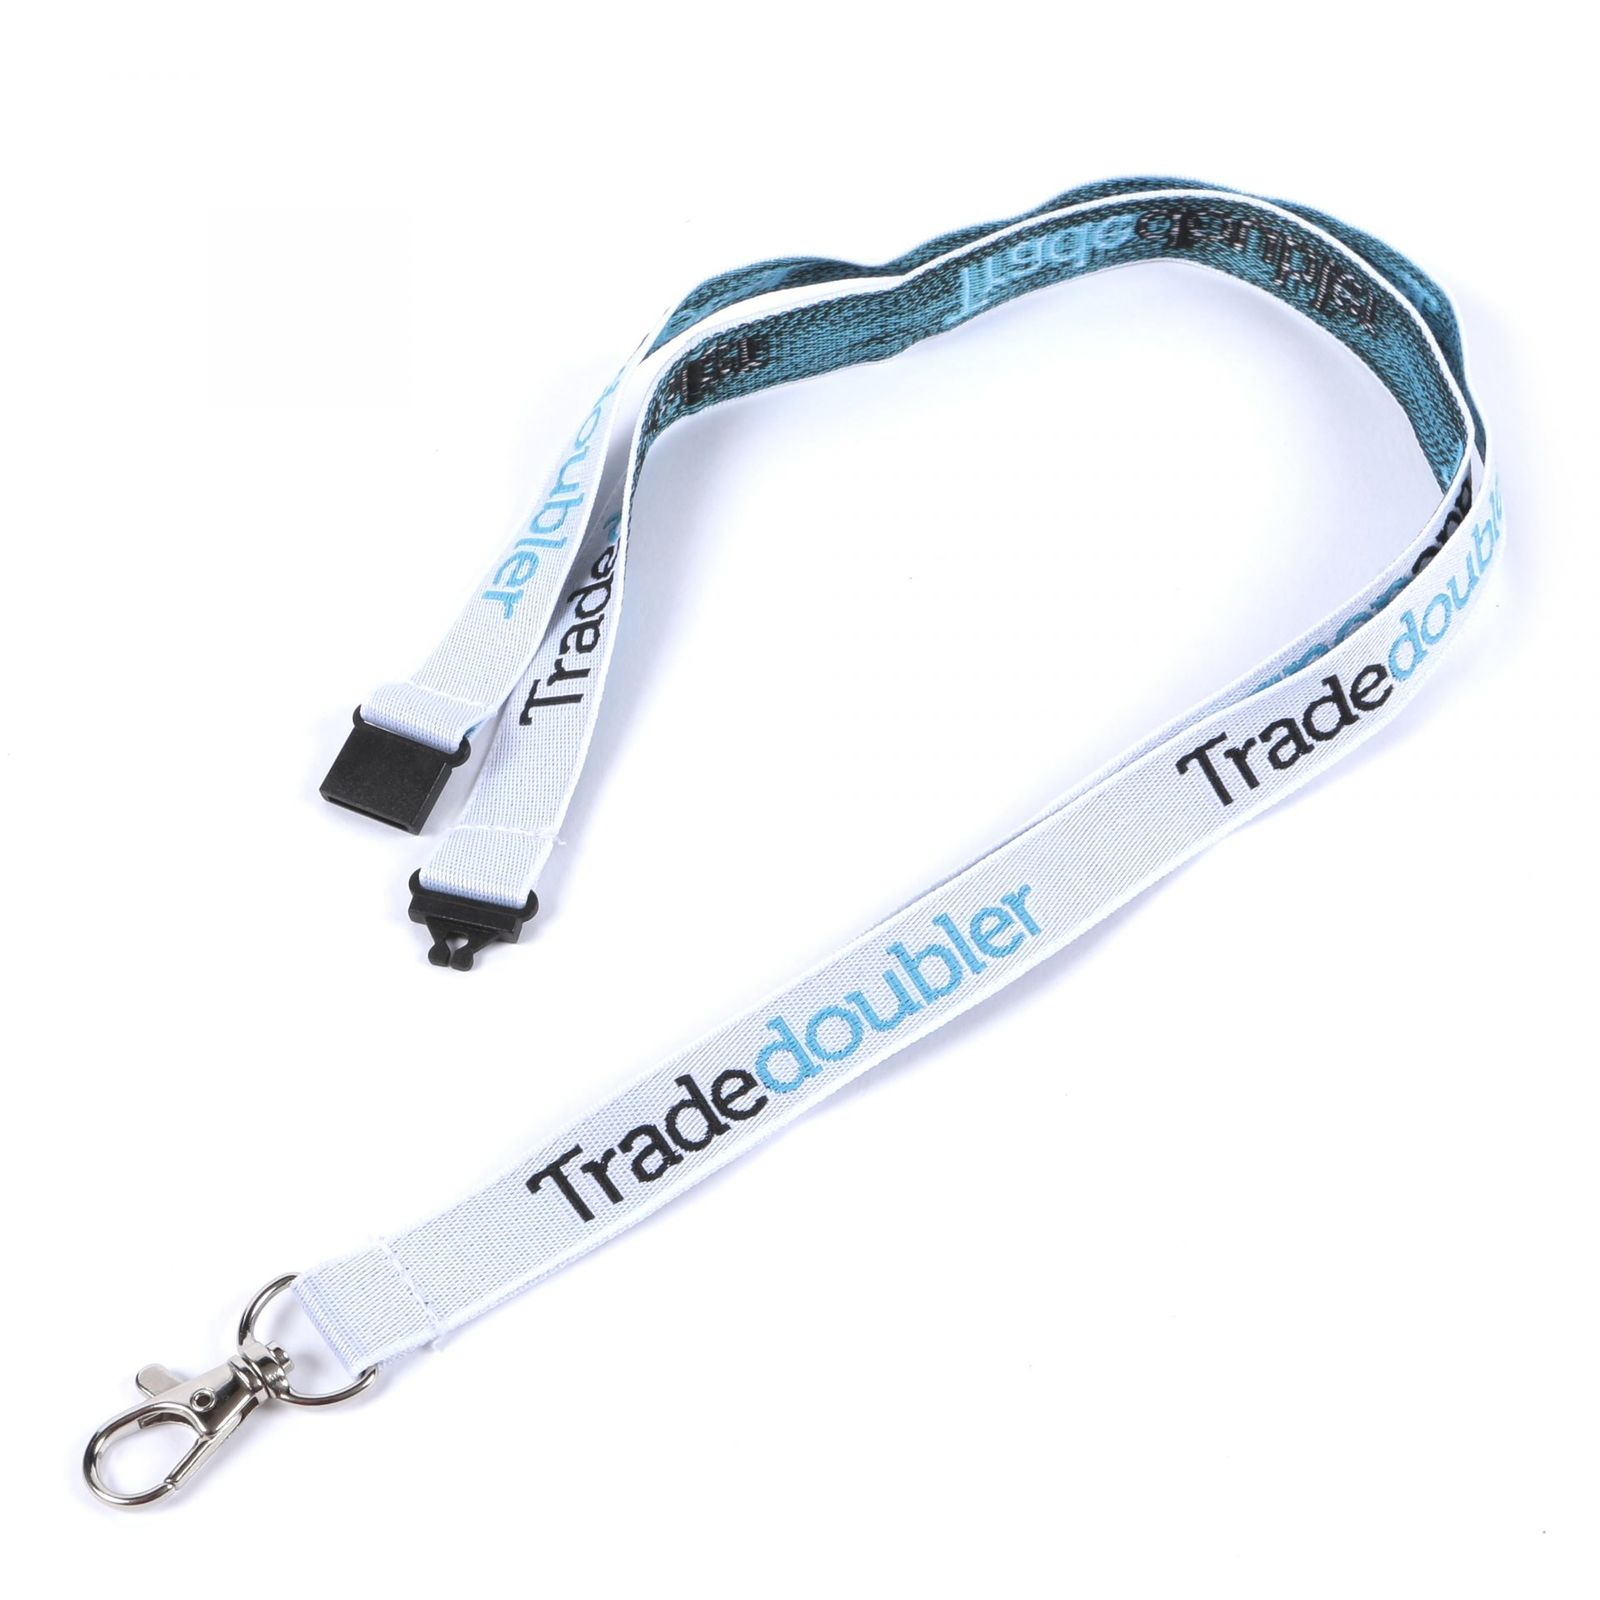 Buy Woven Lanyards on Lanyards Direct Today!